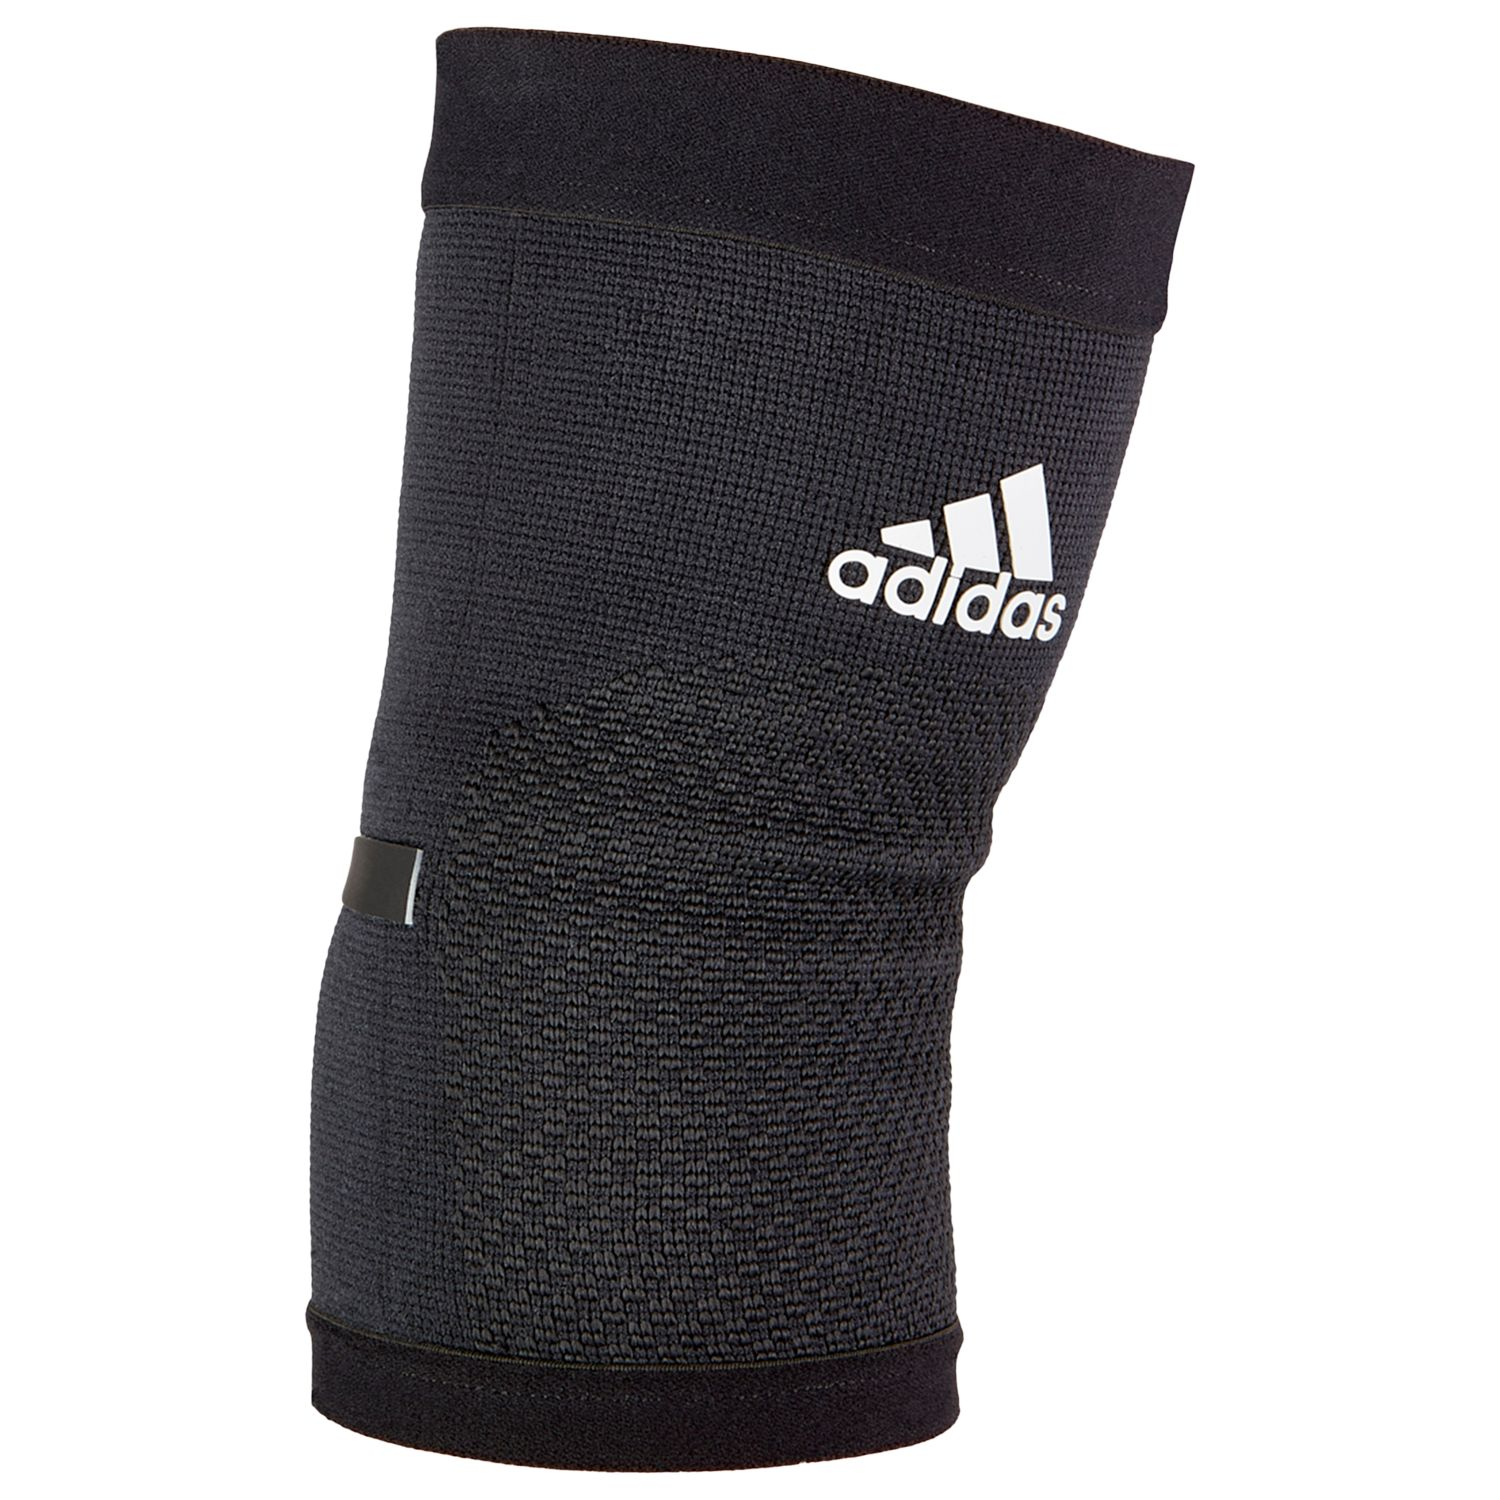 Adidas adidas Elbow Support Brace, Black